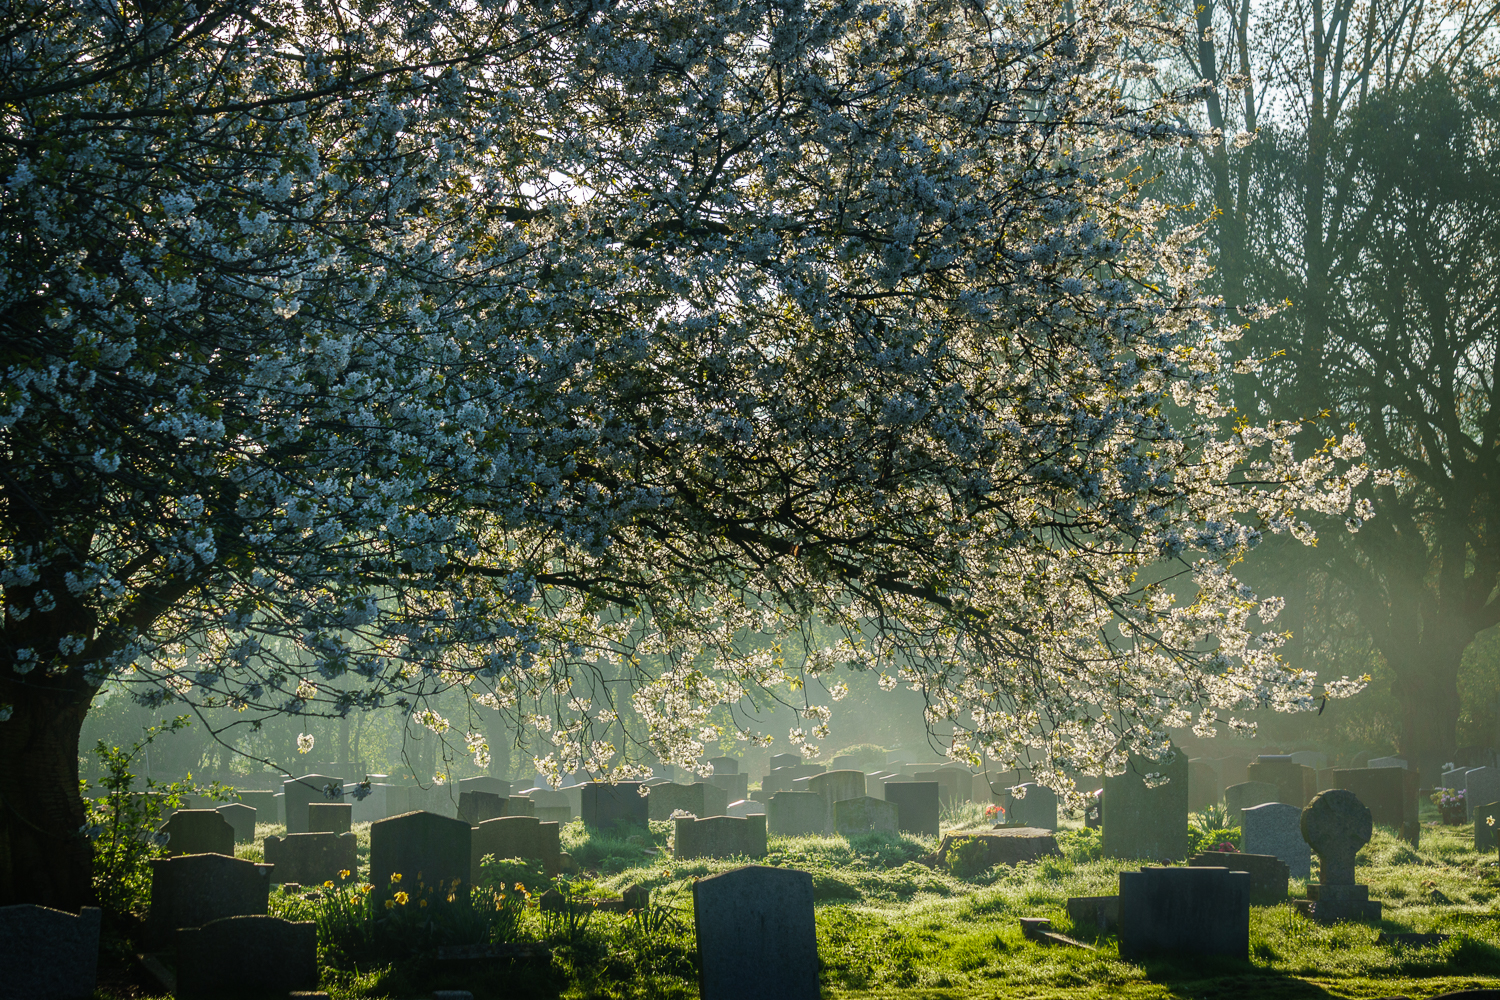 Blossom over the Gravestones